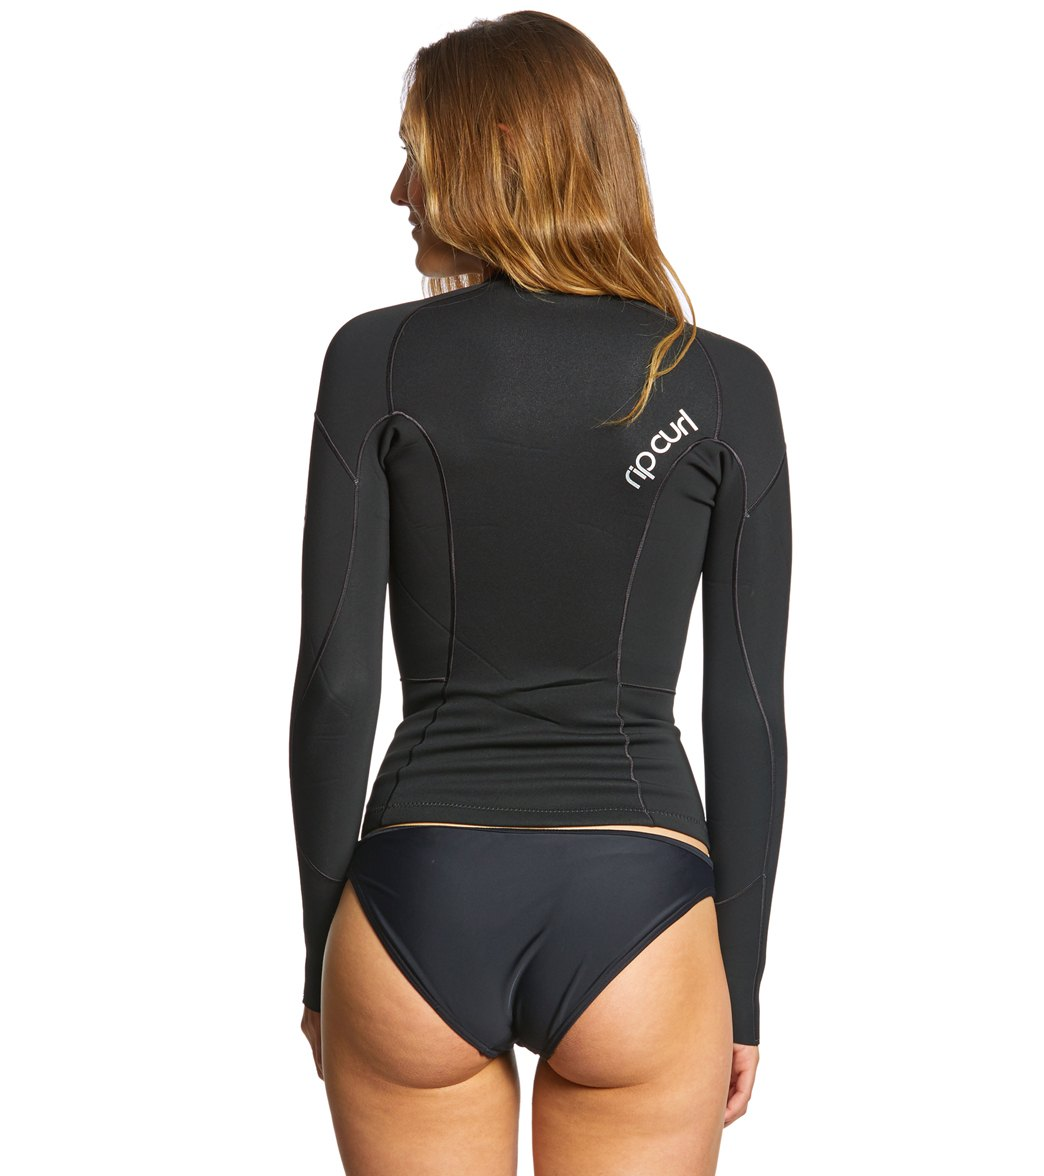 3ebdce6bc9 Rip Curl Women s Dawn Patrol Long Sleeve Surf Jacket at SwimOutlet ...